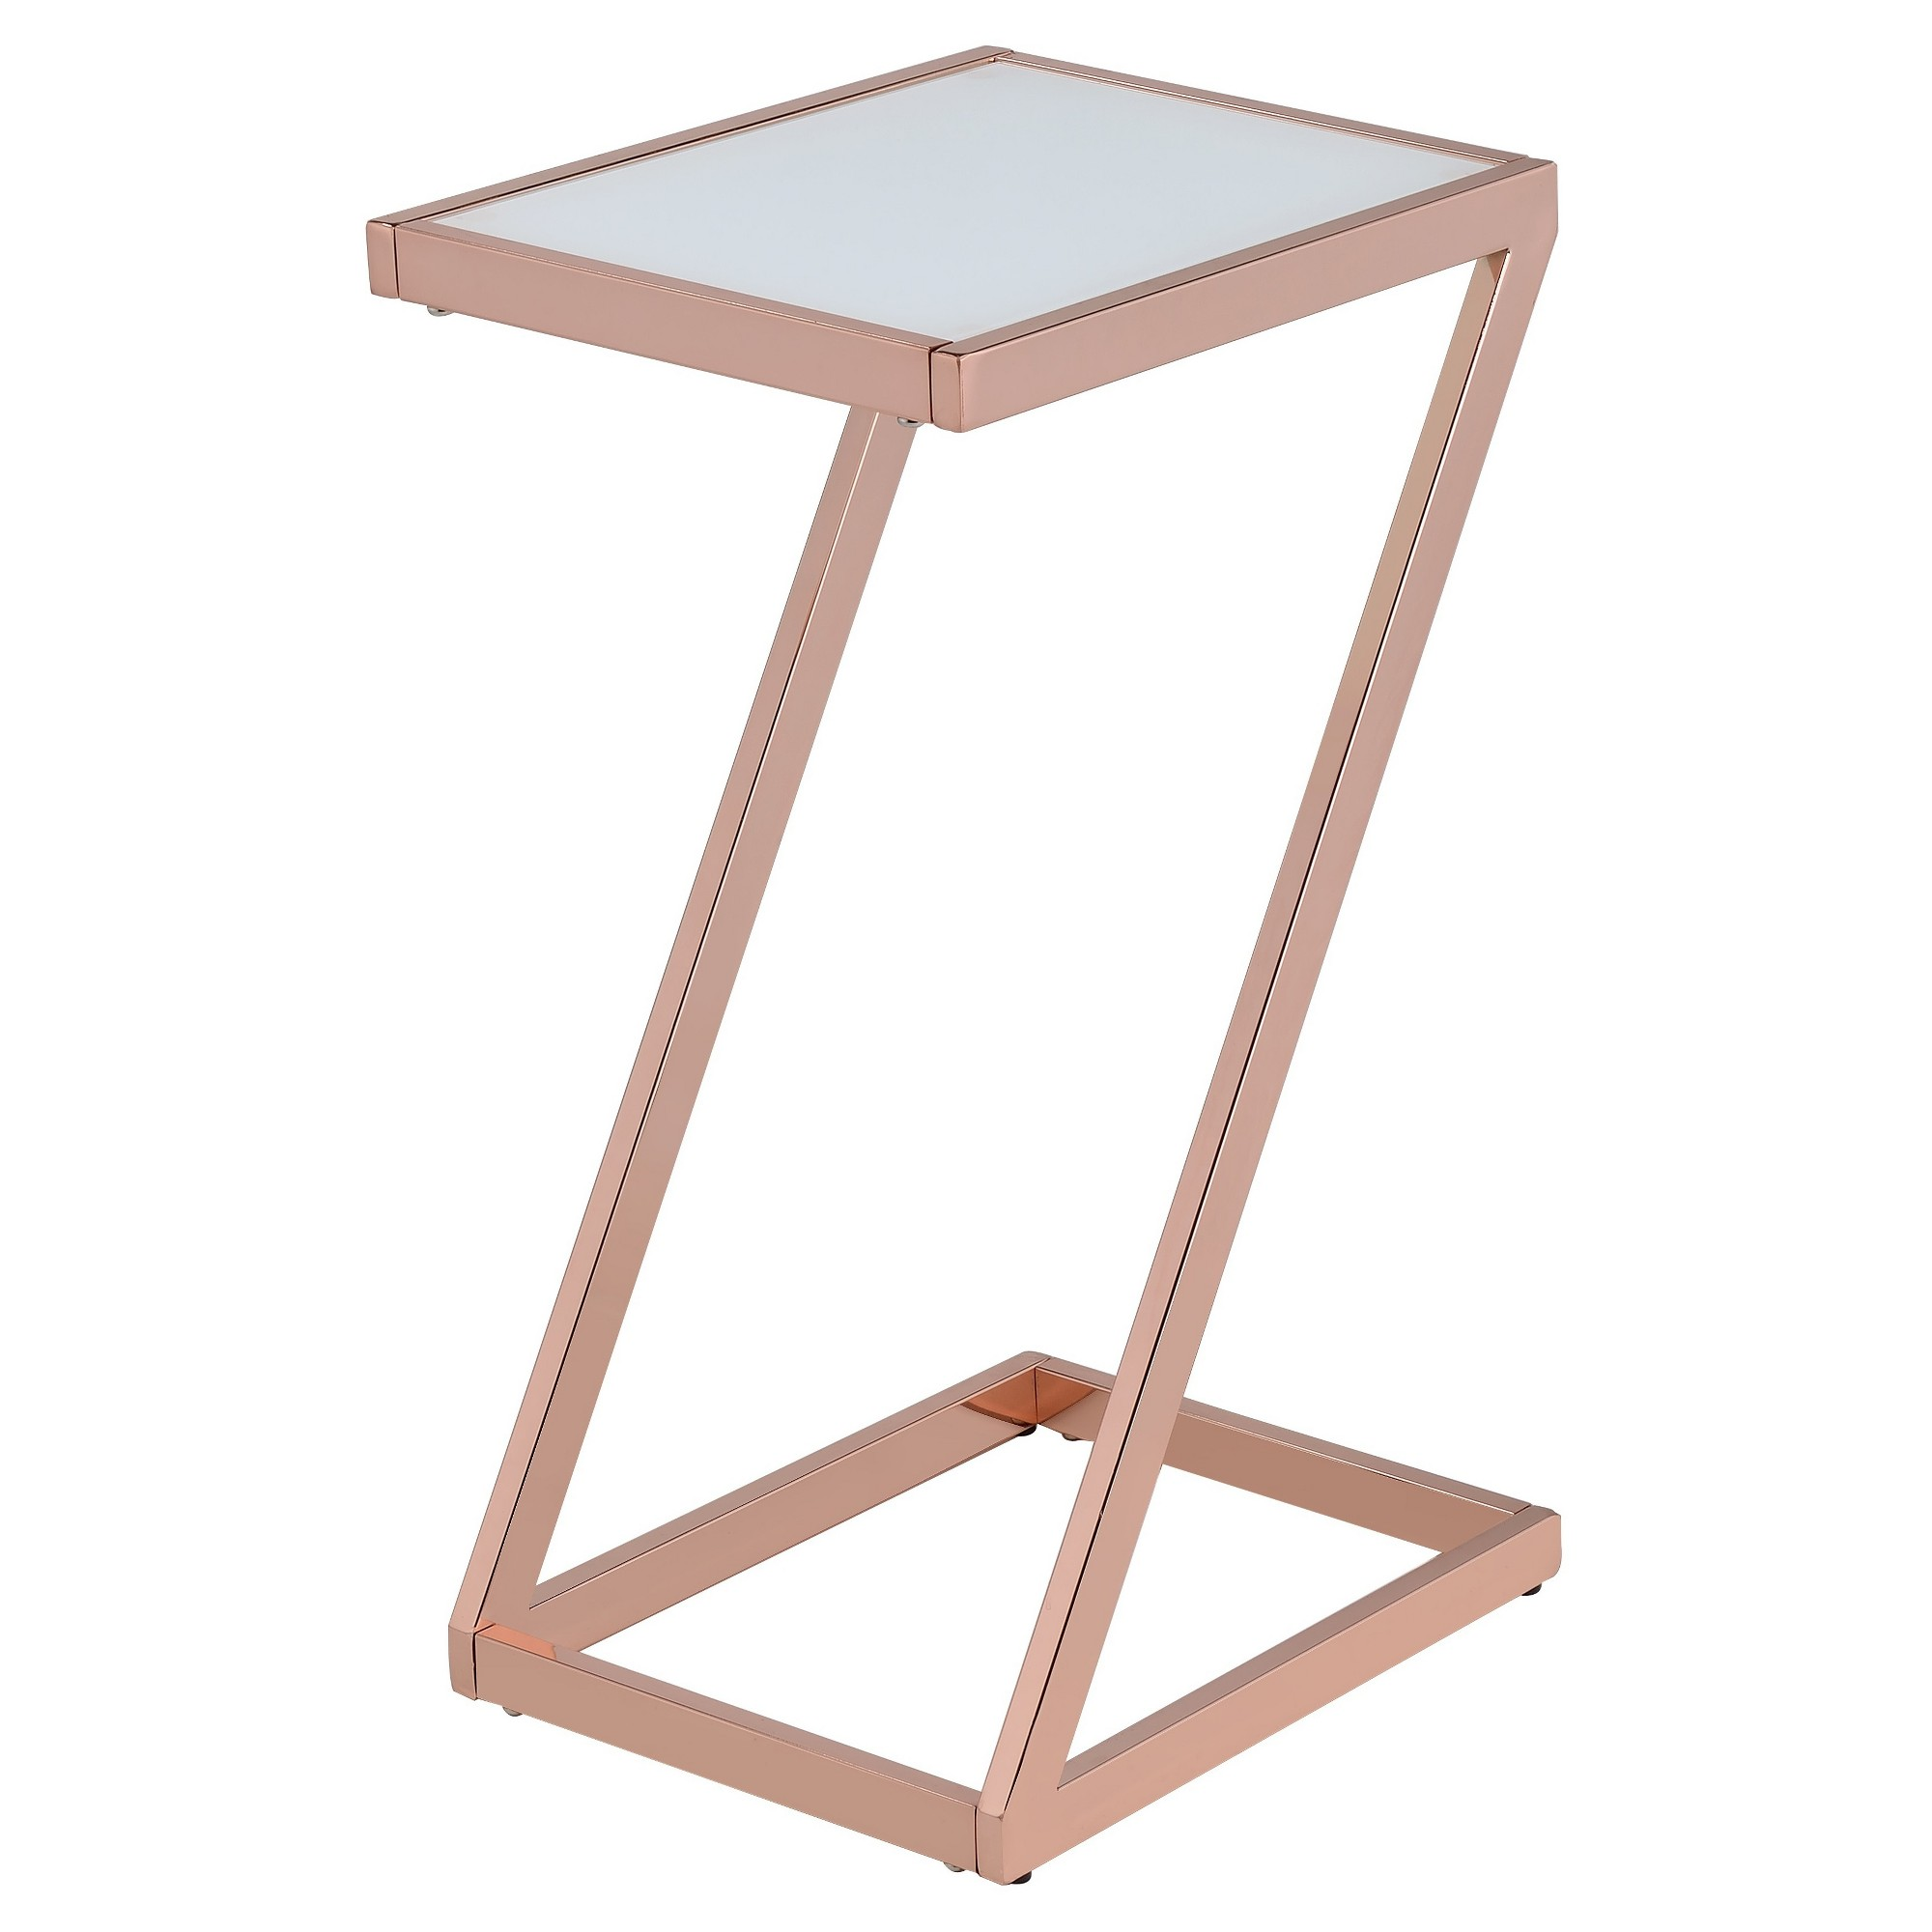 end table rose gold frosted glass frosting accent dale tiffany lamps clearance pool couch covers kmart chairs with unusual bedside tables ikea pedestal safavieh contemporary